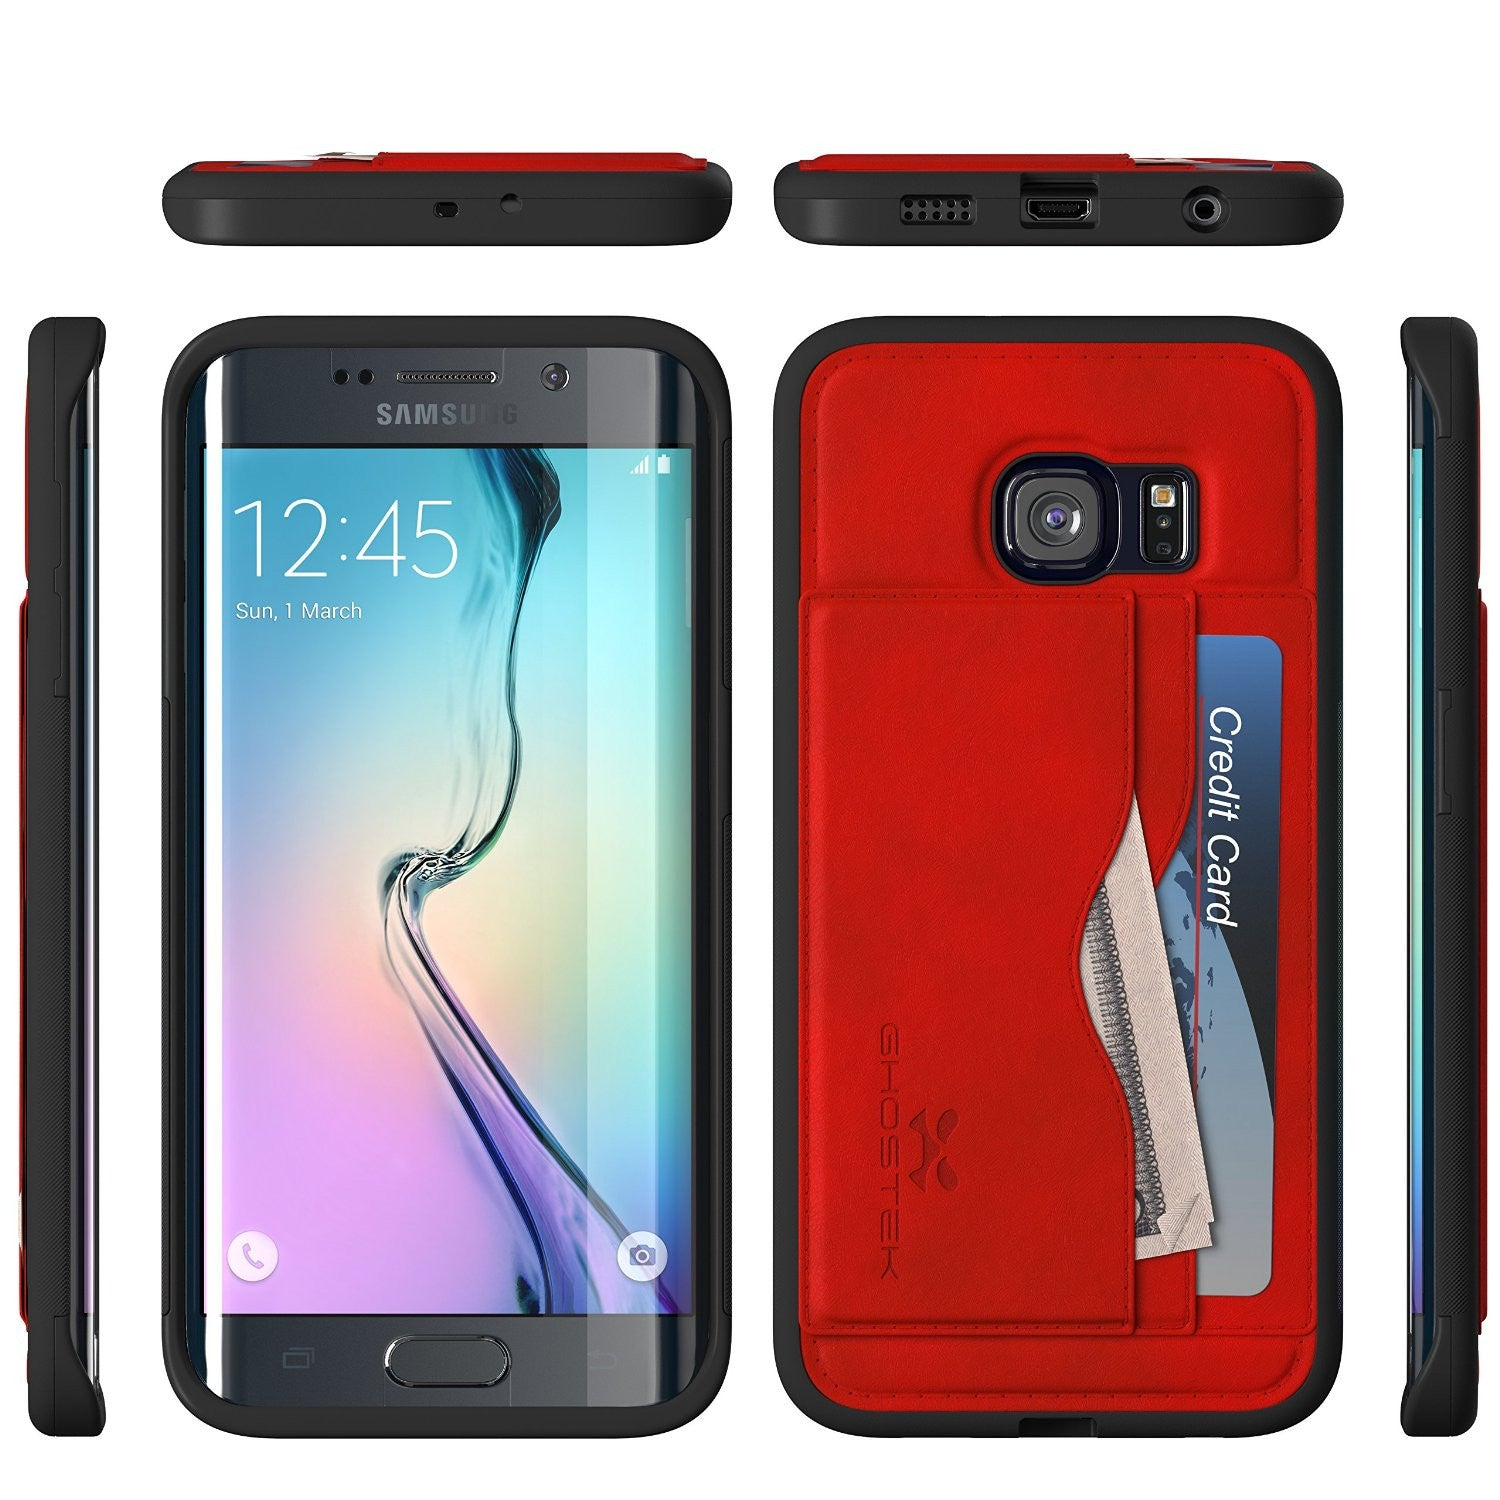 _Wallet_Case_Ghostek_Stash_Samsung_Galaxy_S6_Edge_Wallet_Case_Galaxy